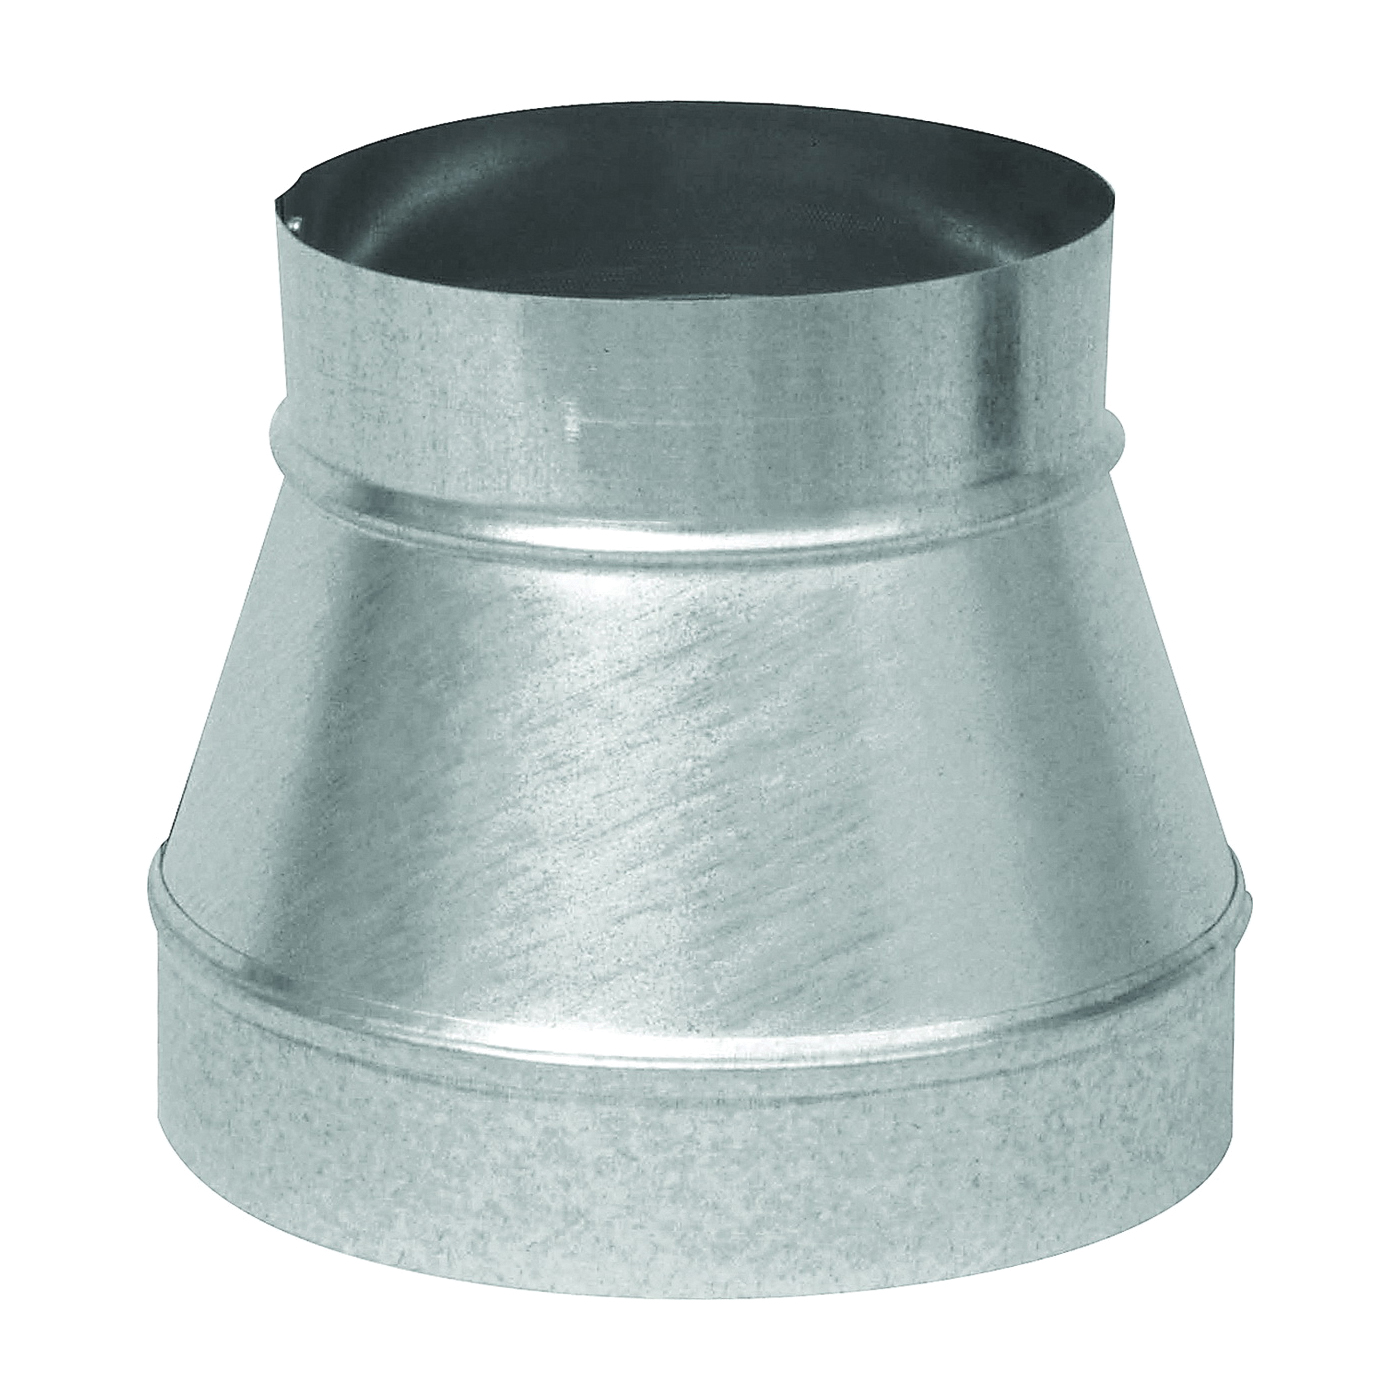 Picture of Imperial GV1202 Stove Pipe Reducer, 7 x 6 in, 26 ga Thick Wall, Black, Galvanized